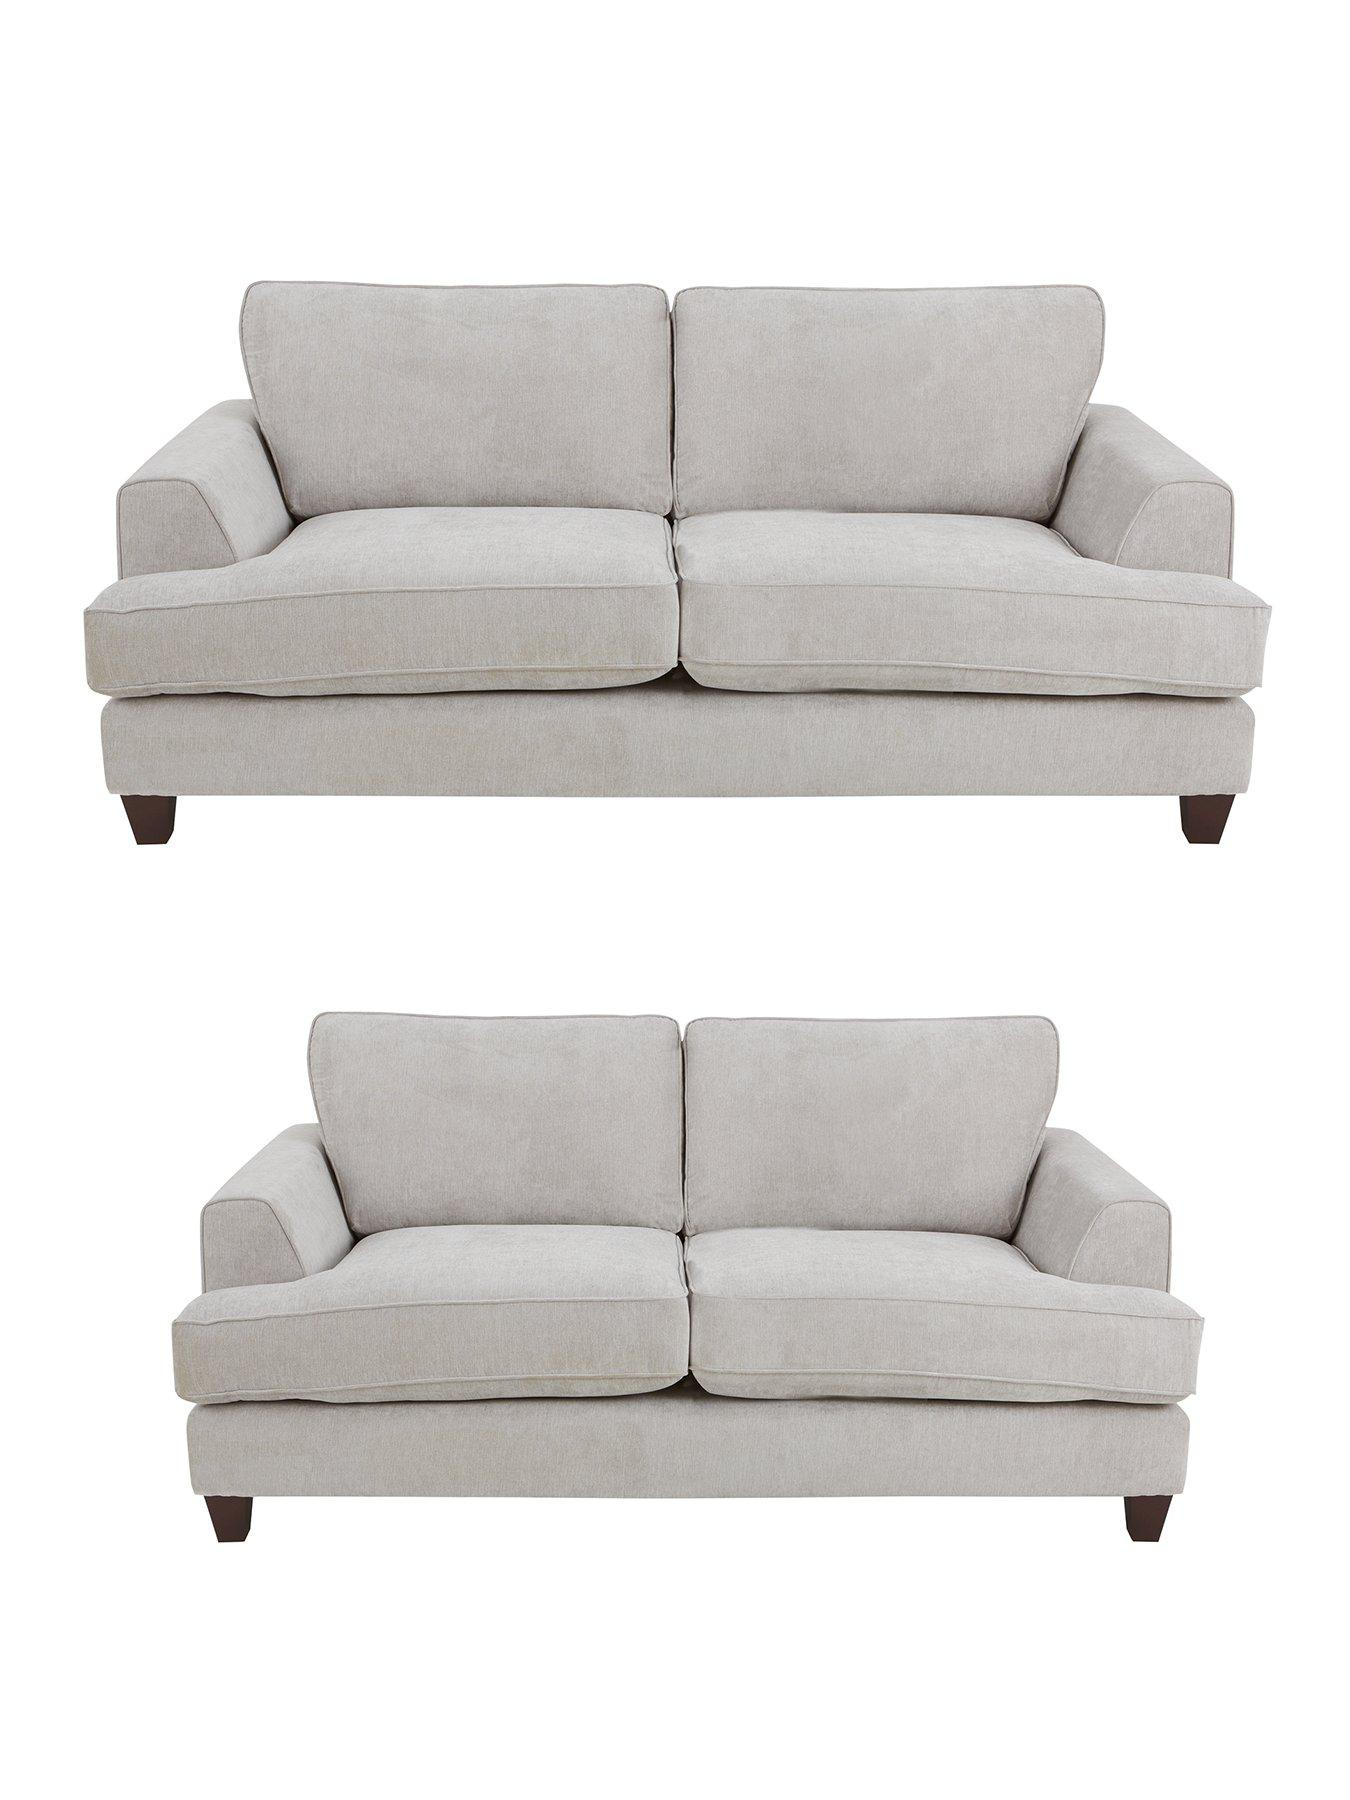 ideal home camden 3seater 2seater fabric sofa set buy and save